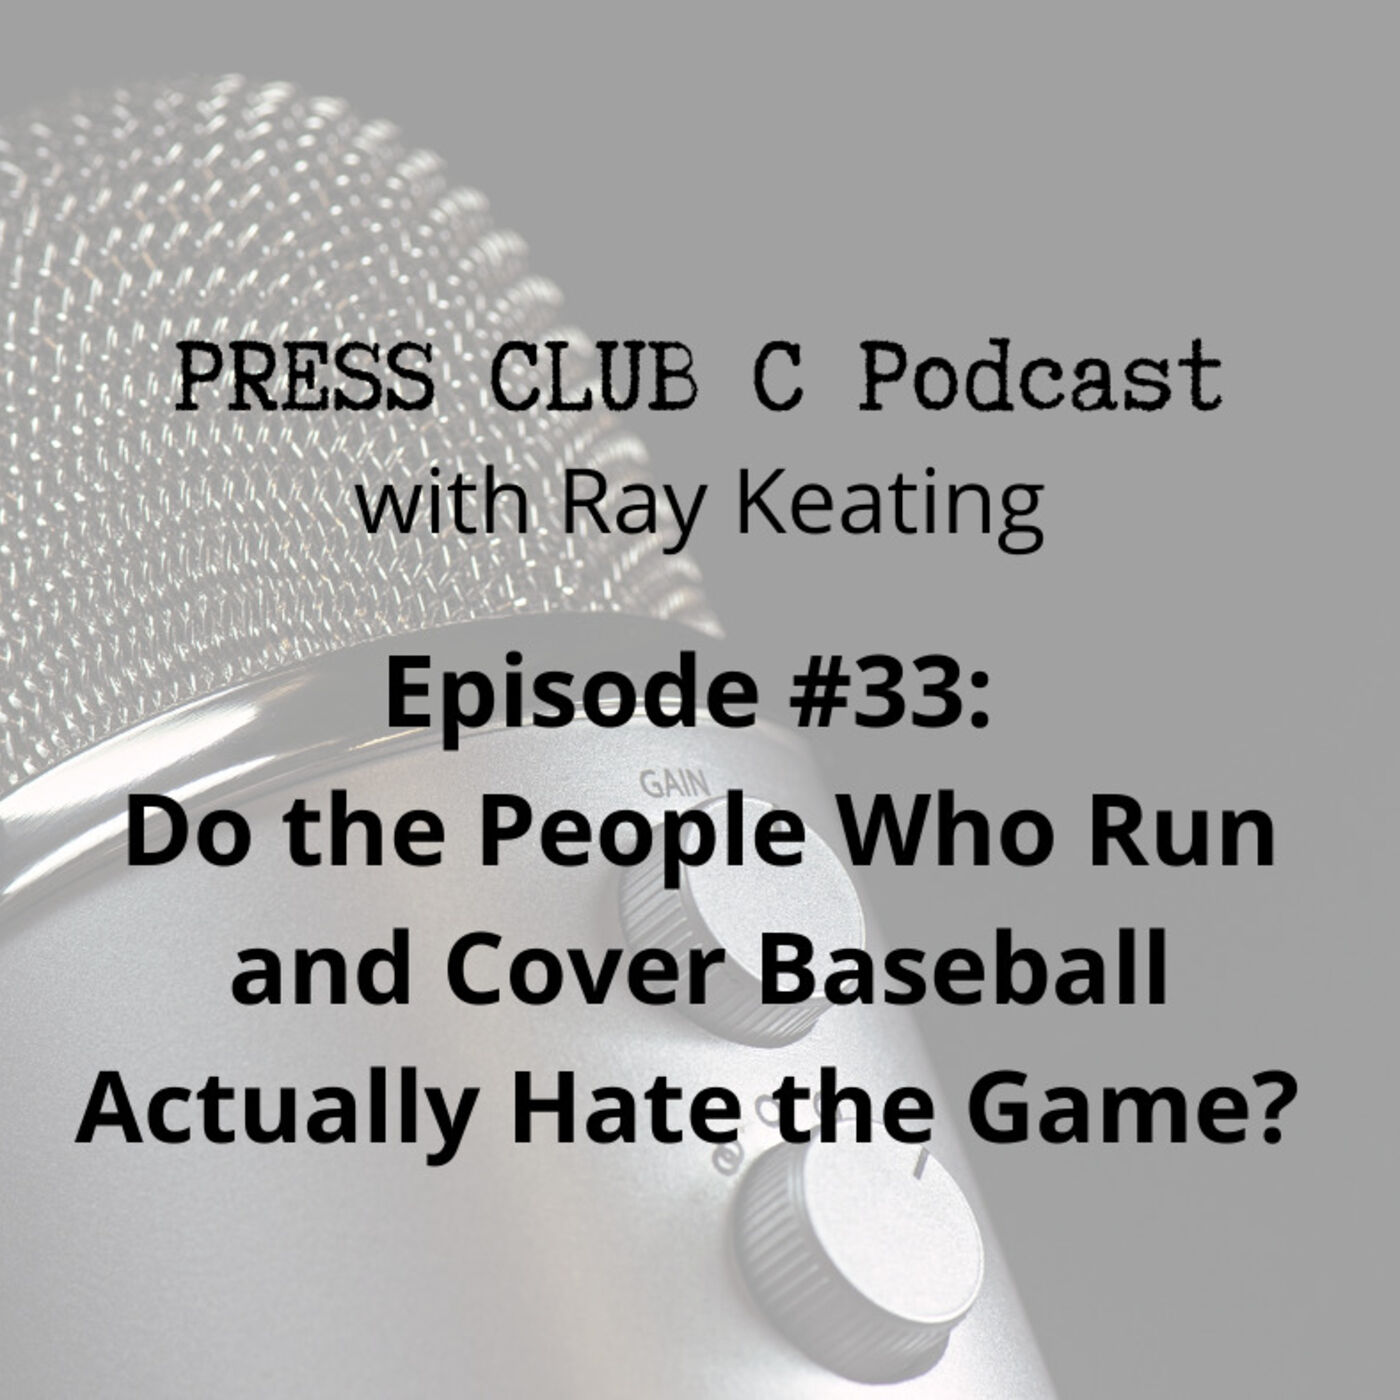 Episode #33: Do the People Who Run and Cover Baseball Actually Hate the Game?